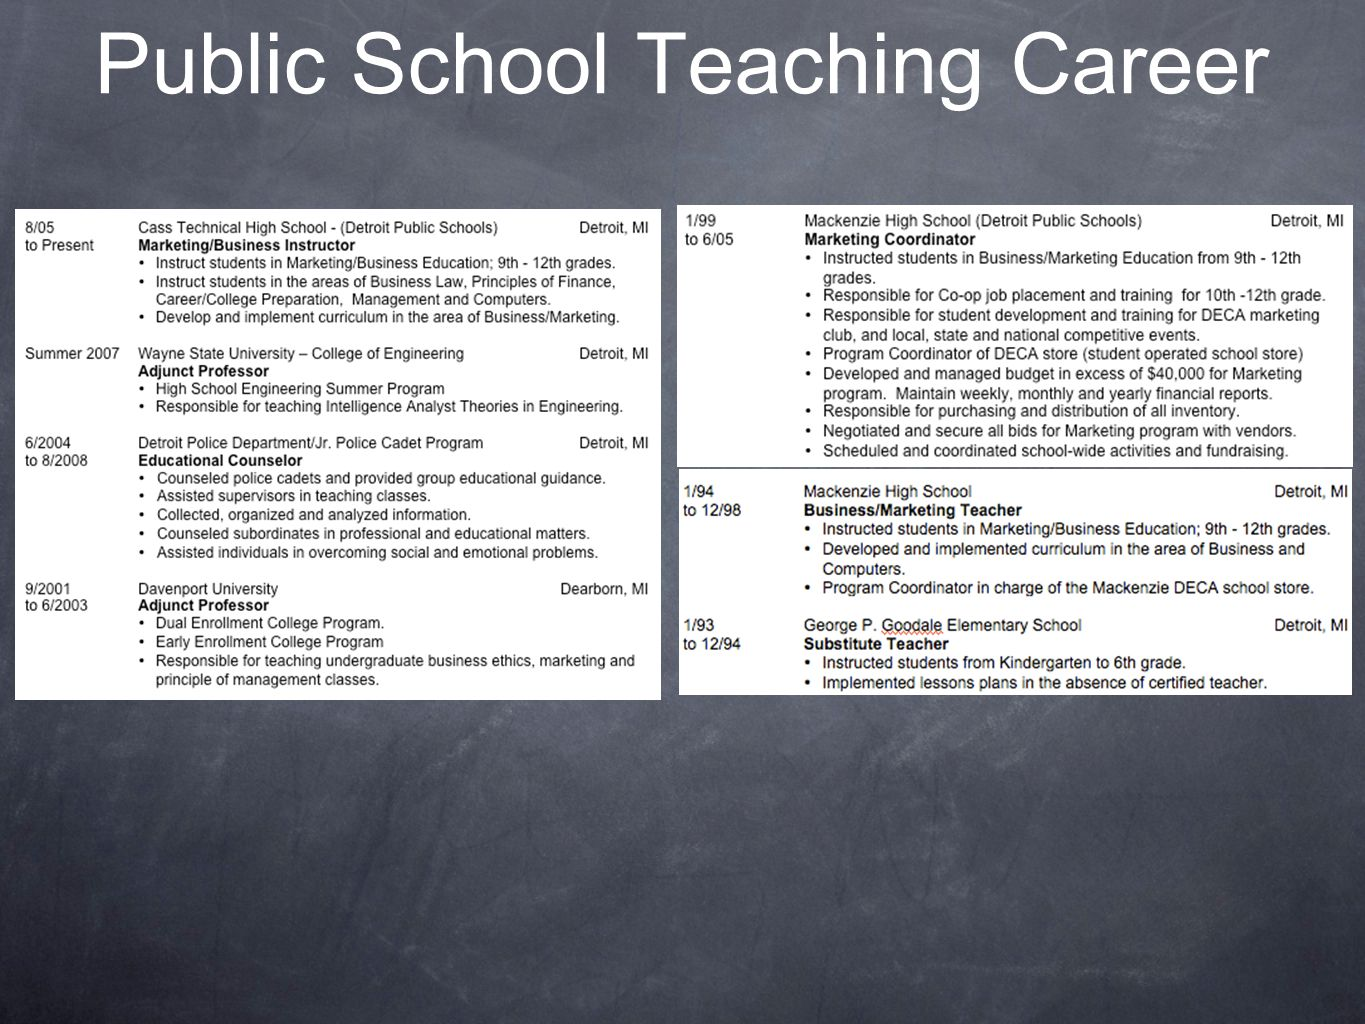 Public School Teaching Career